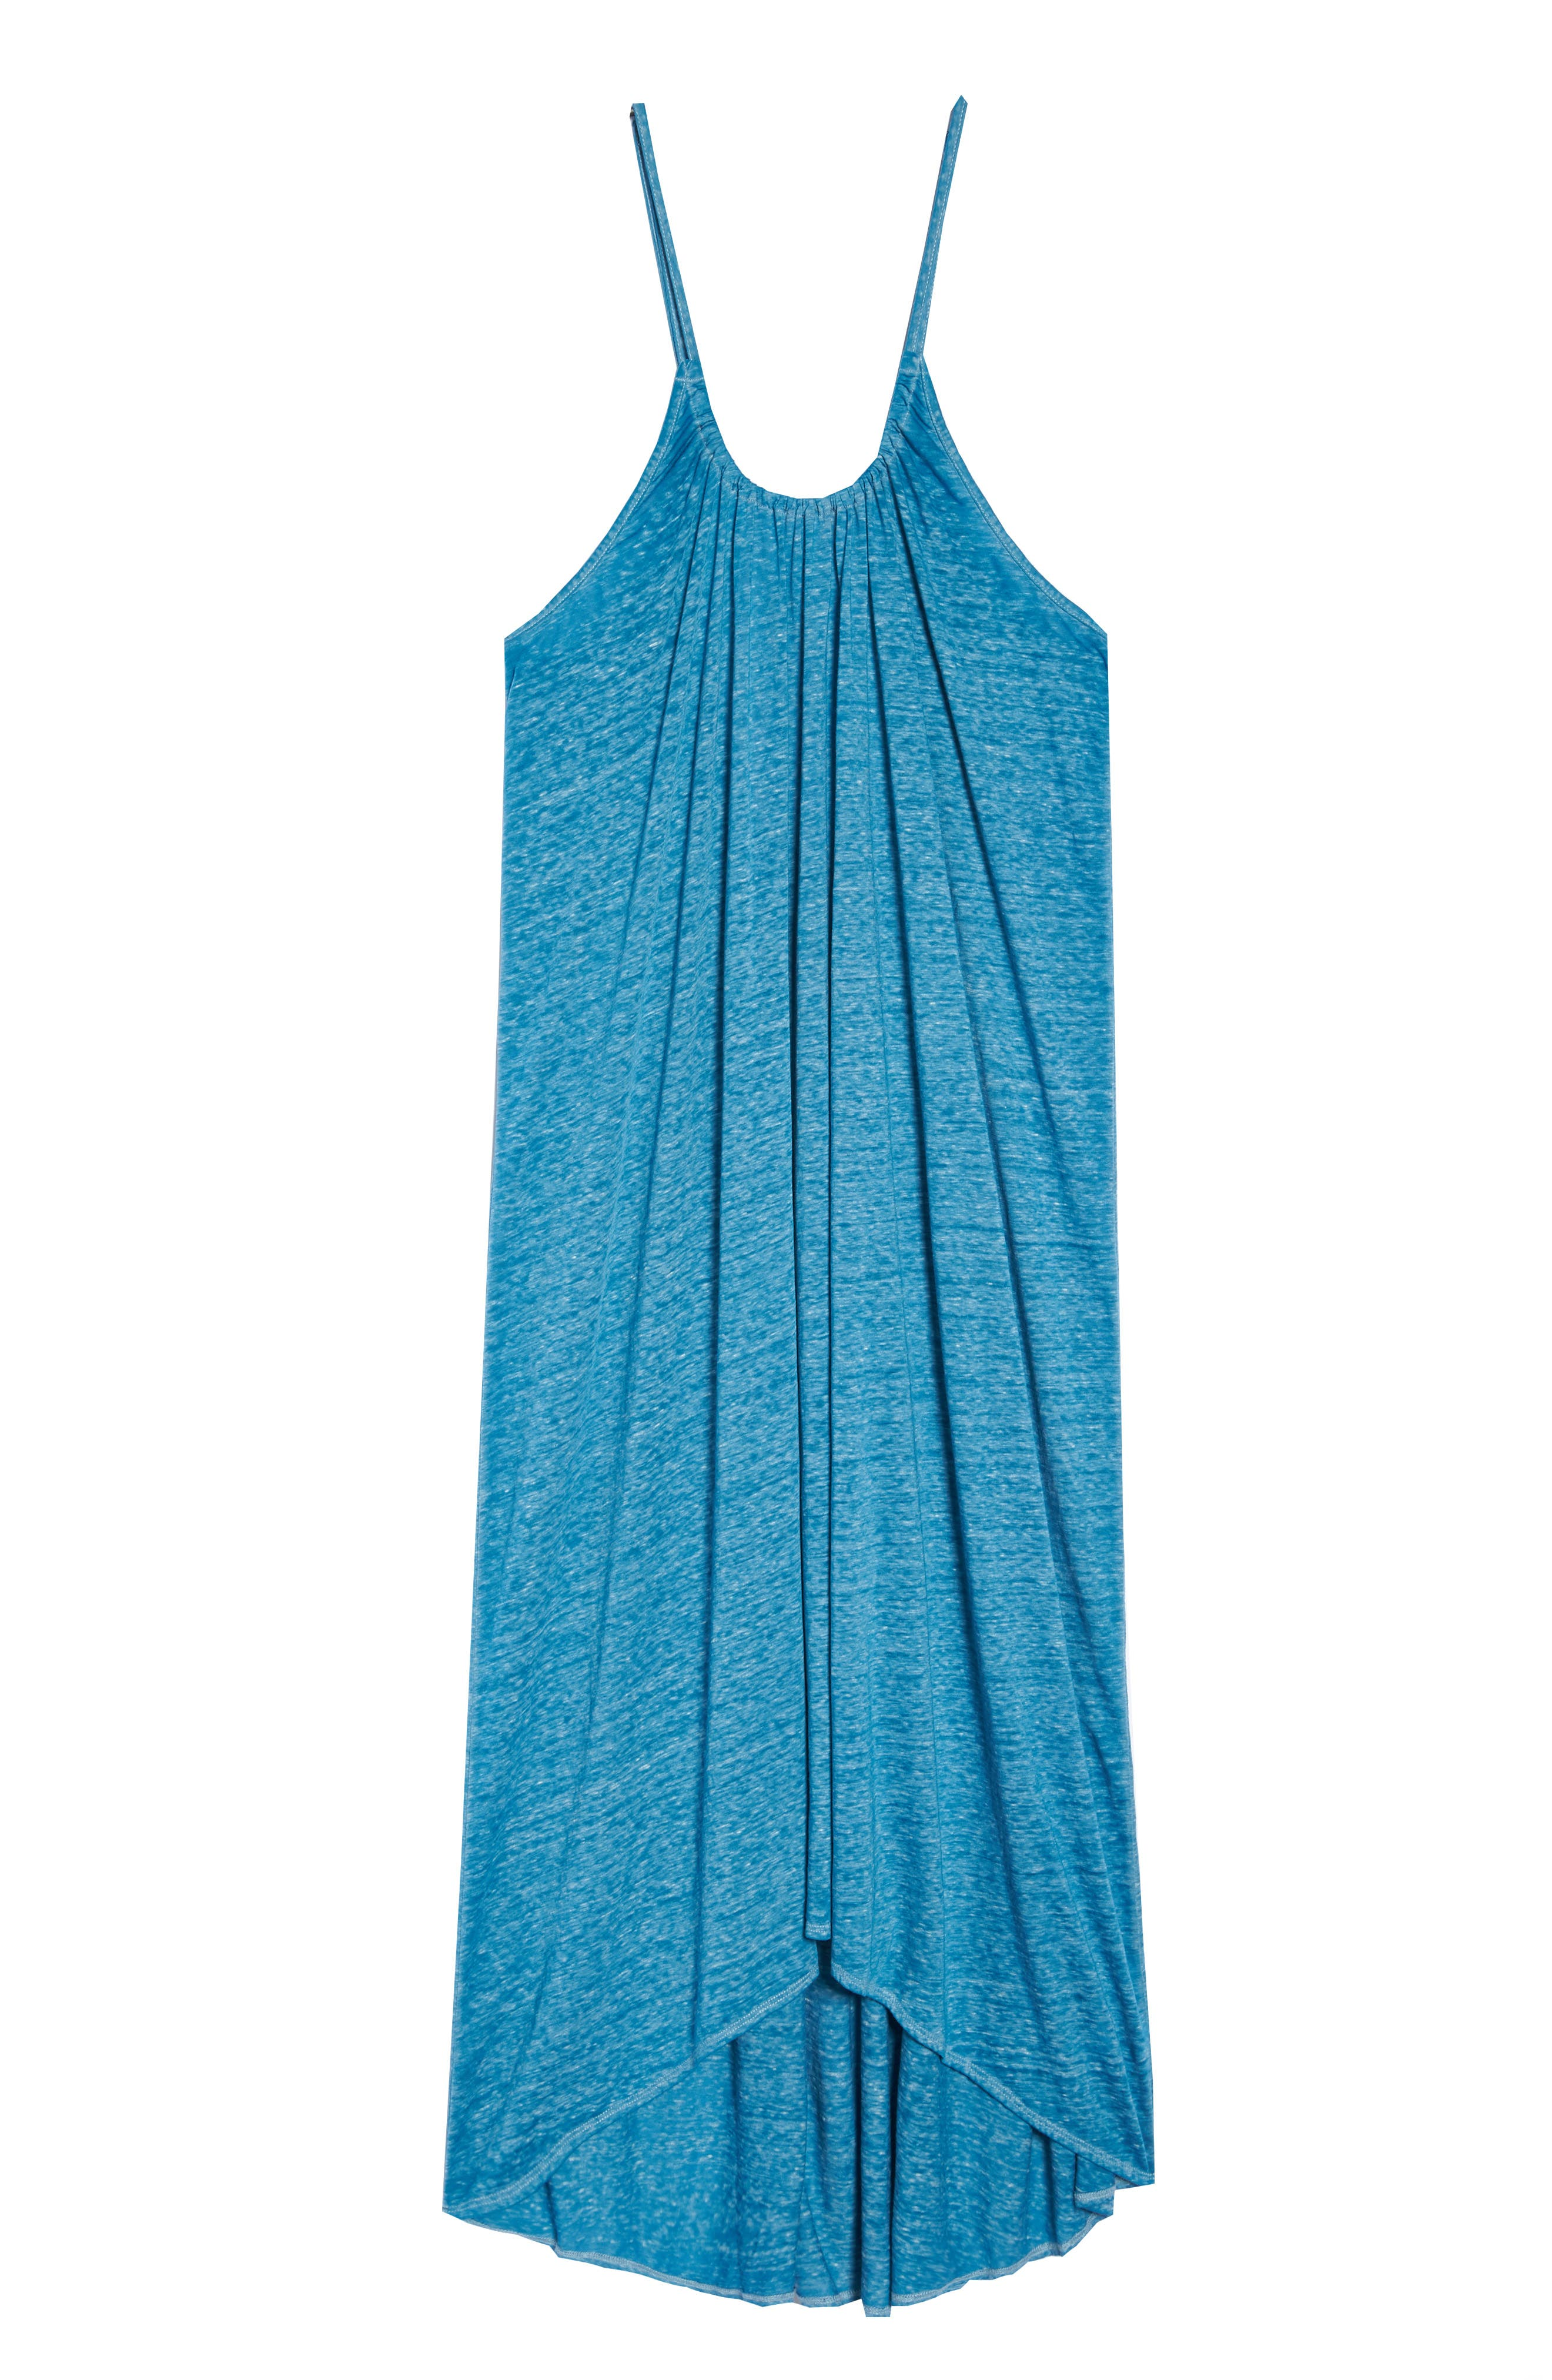 Maxi Cover-Up Dress,                             Alternate thumbnail 6, color,                             Teal Turkish